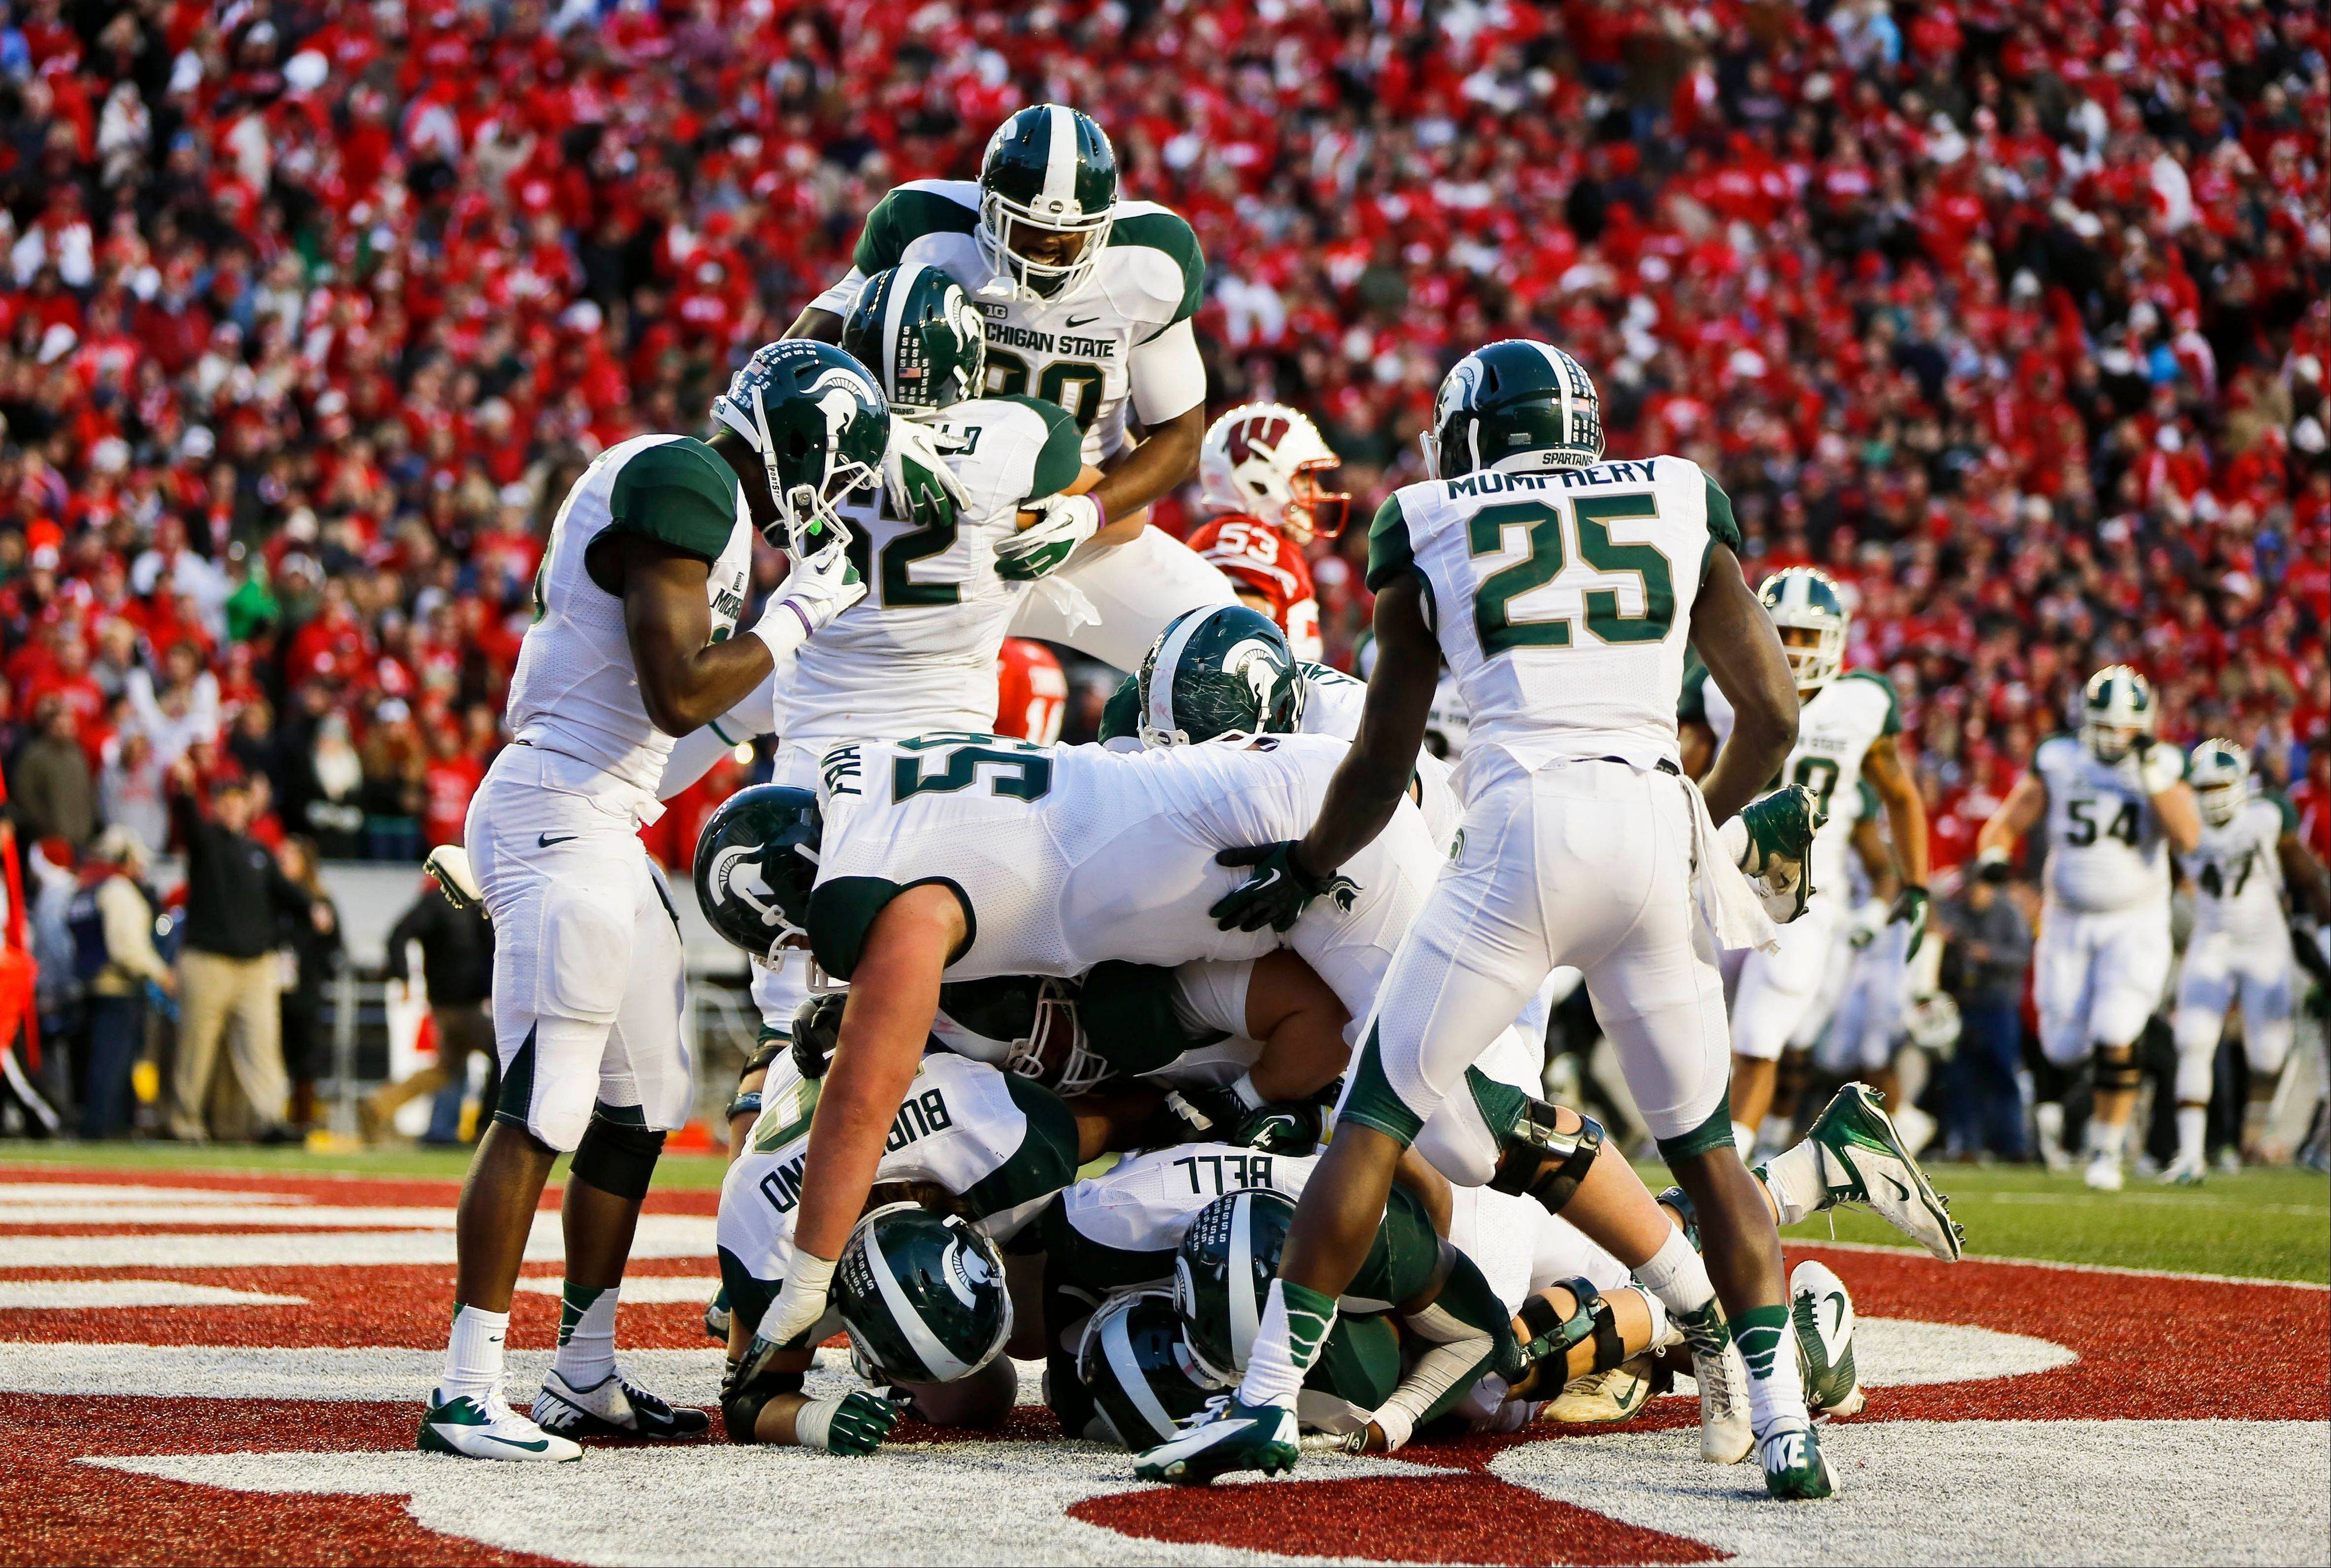 Michigan State players celebrate after defeating Wisconsin 16-13 Saturday. Michigan State can spoil Nebraska's Big Ten championship hopes with a victory Saturday.